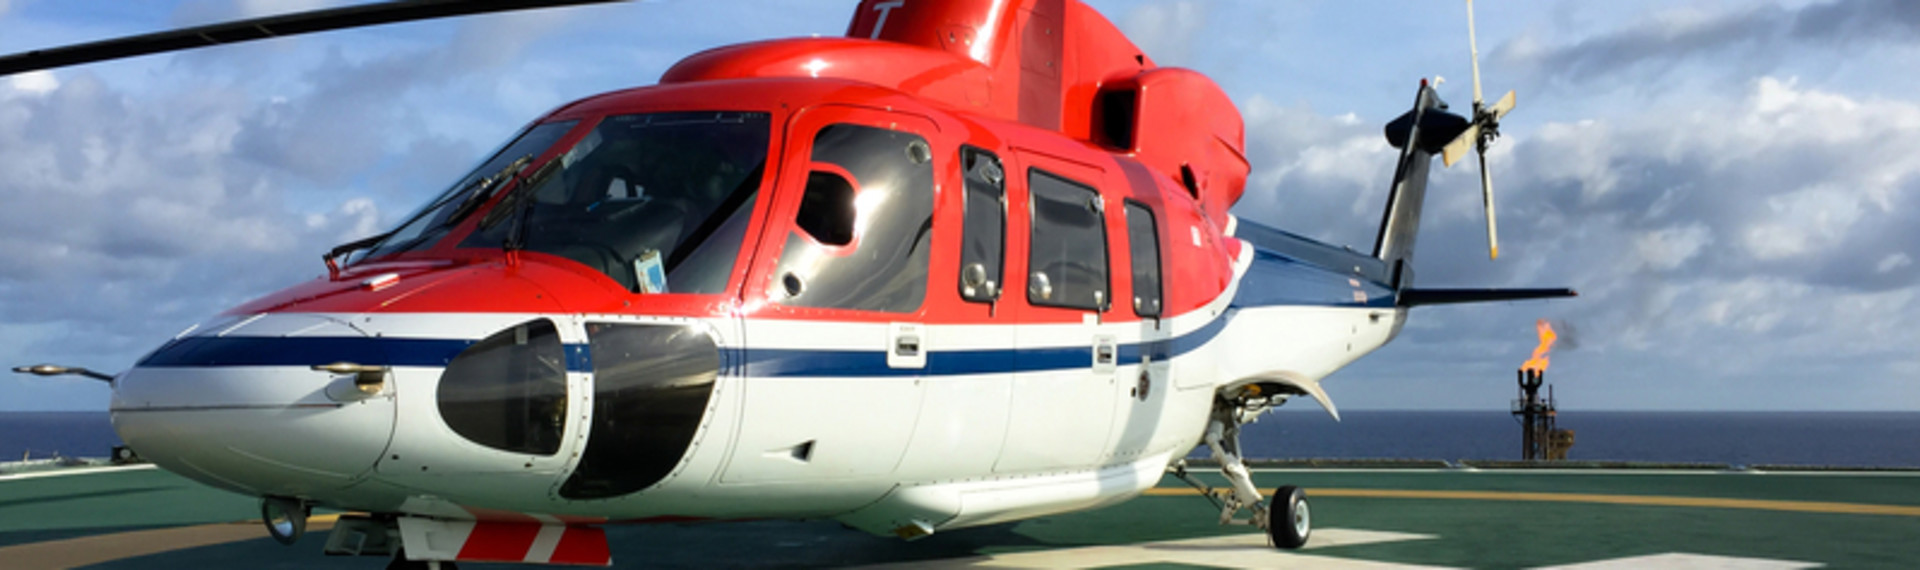 Lisbon Helicopter Tours image